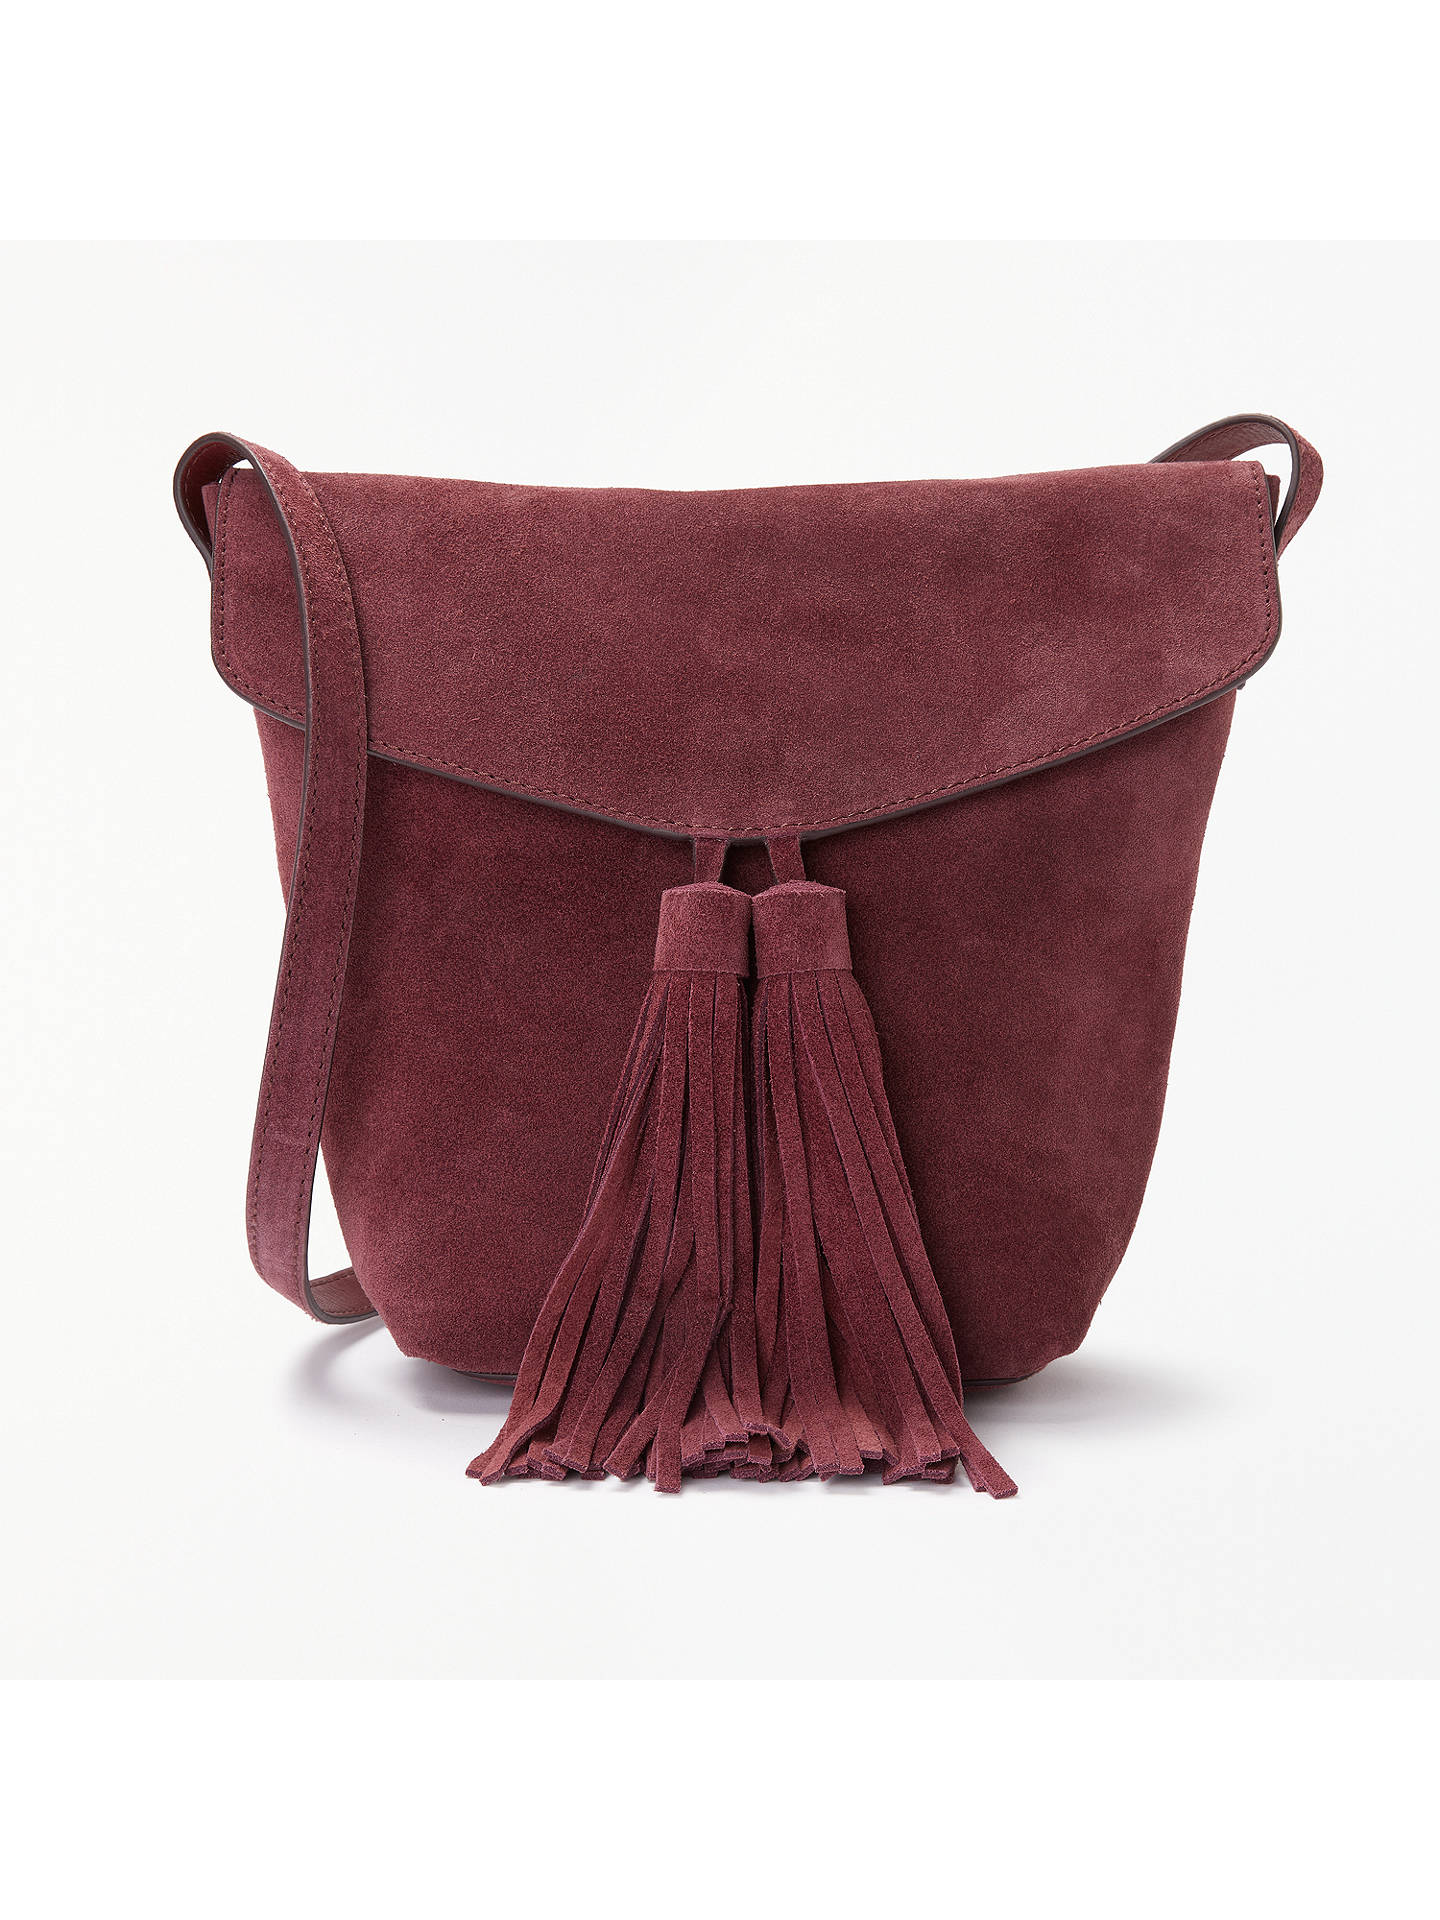 8b9788ed9ee8 AND OR Mila Suede Flapover Tassel Cross Body Bag at John Lewis ...